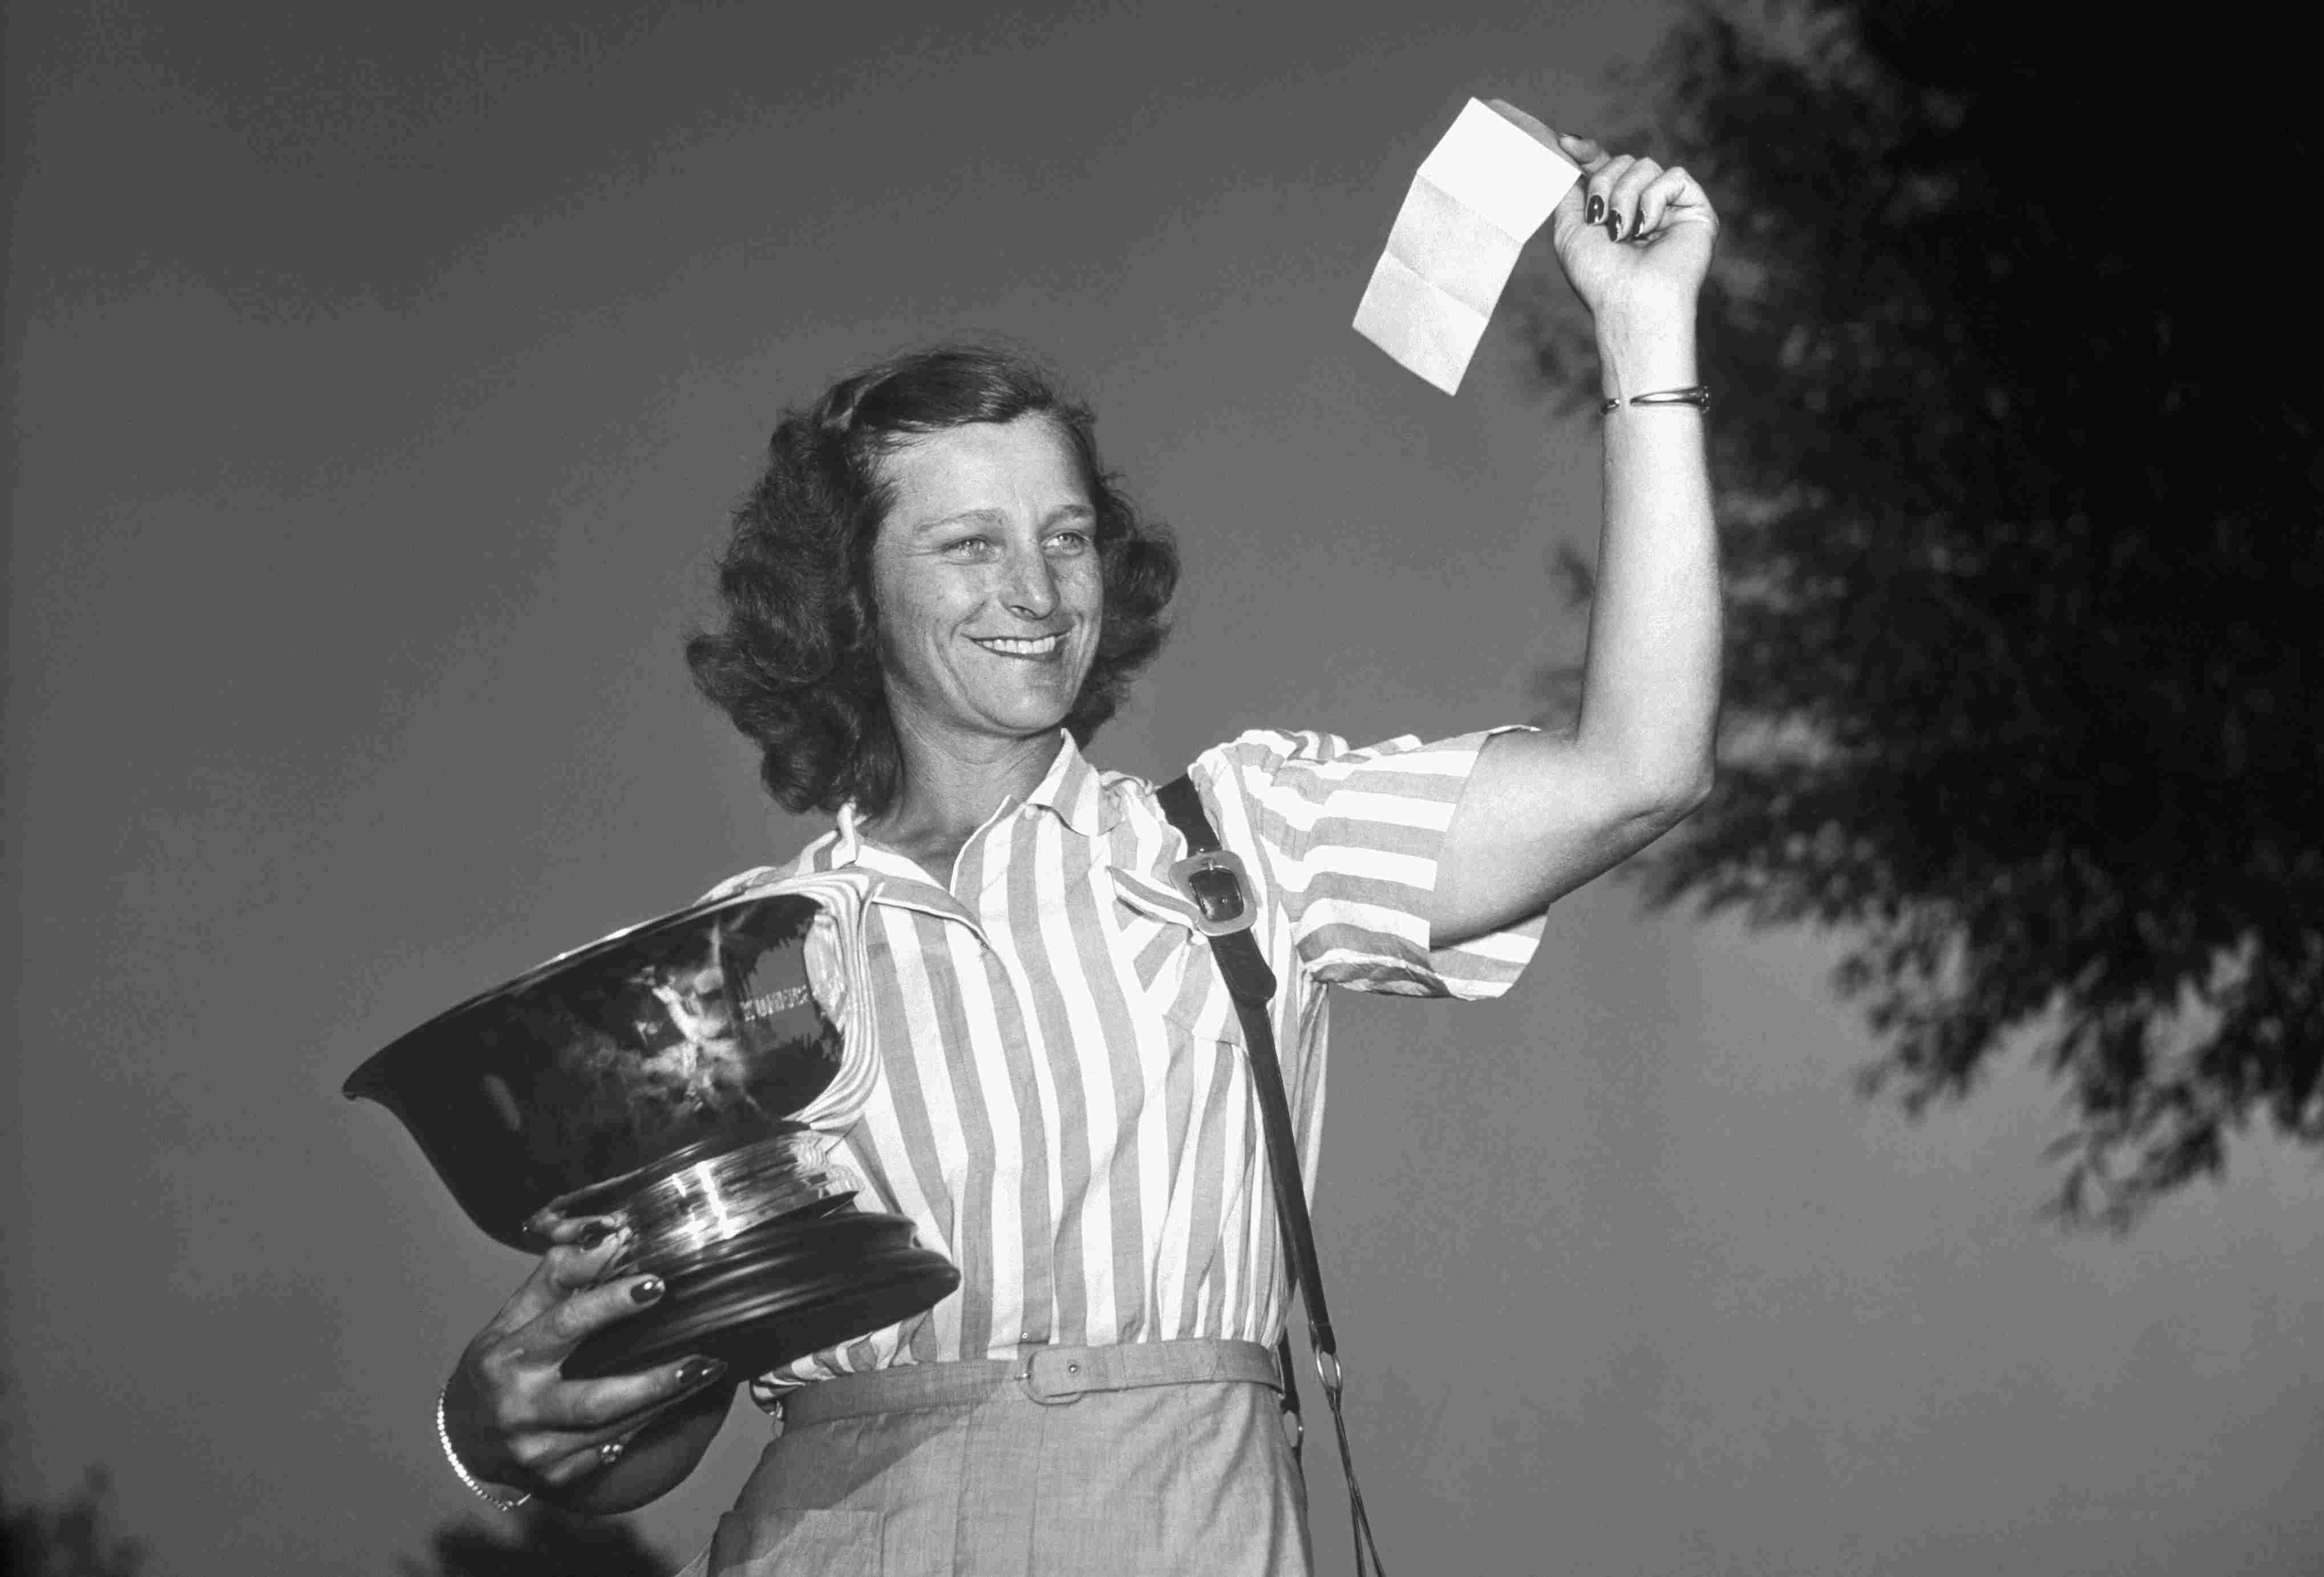 Babe Zaharias after winning the 1948 US Women's Open.